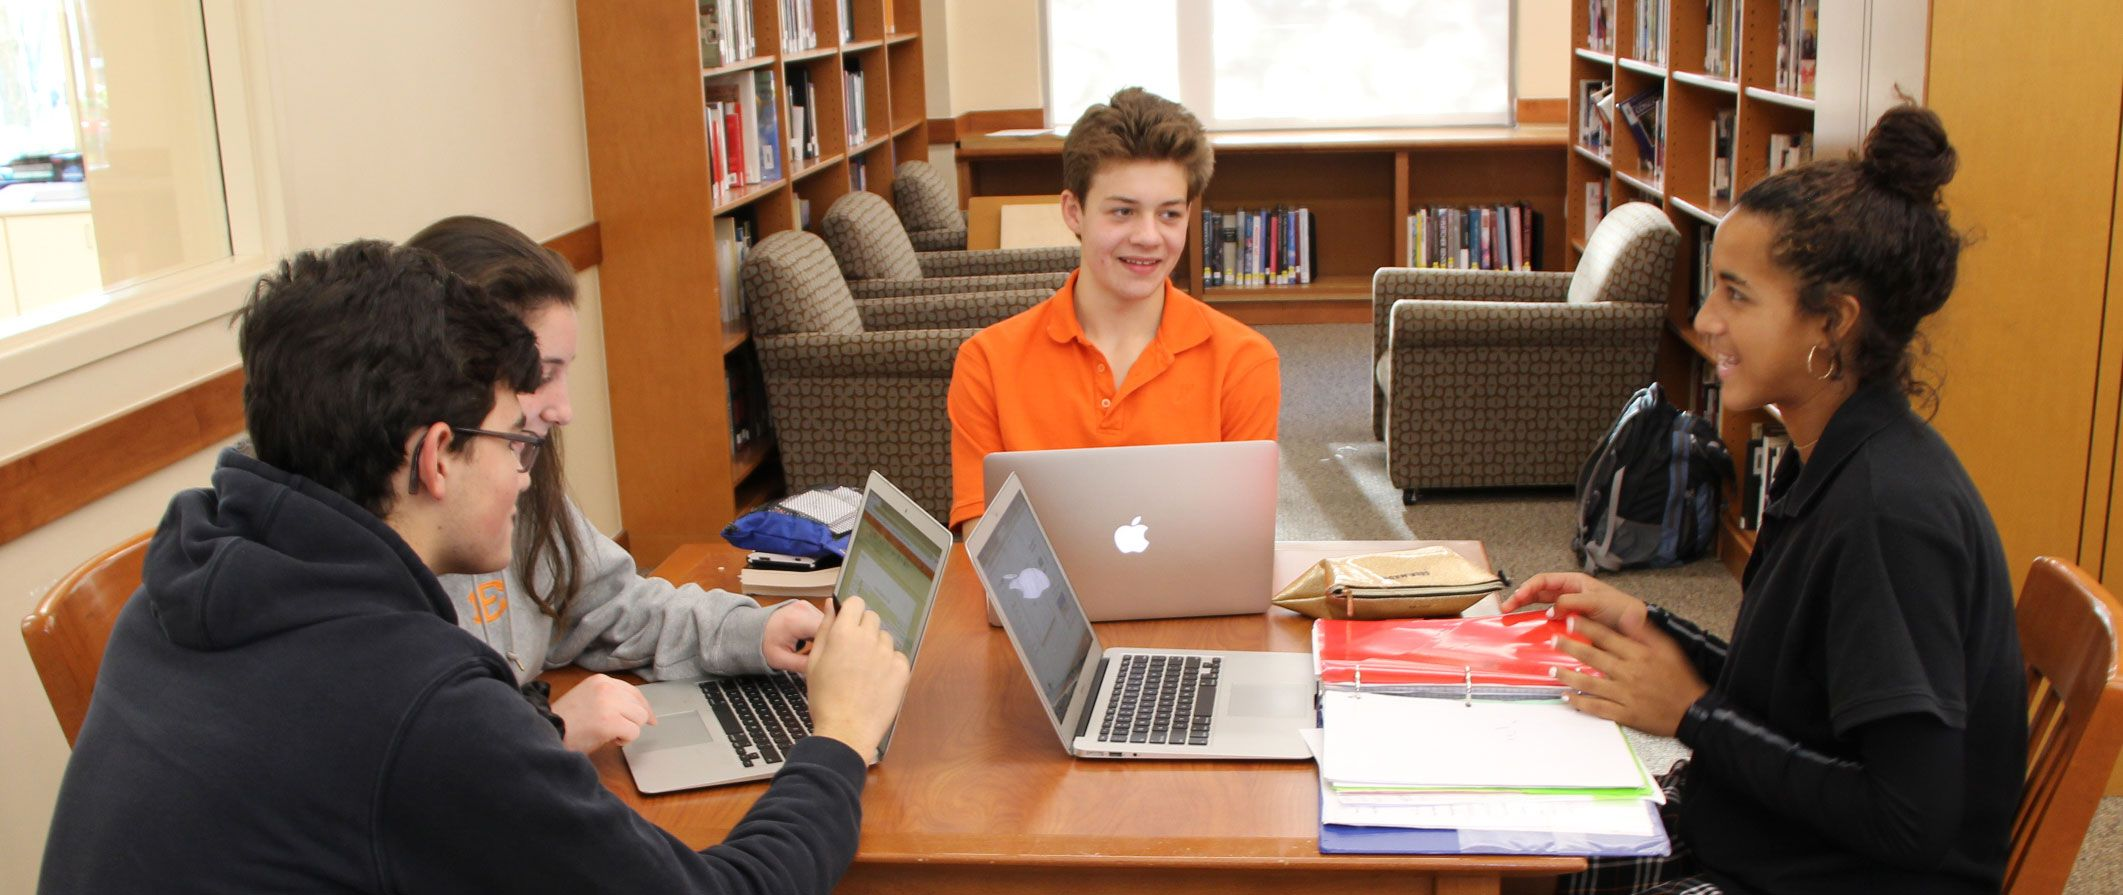 high school students in the library